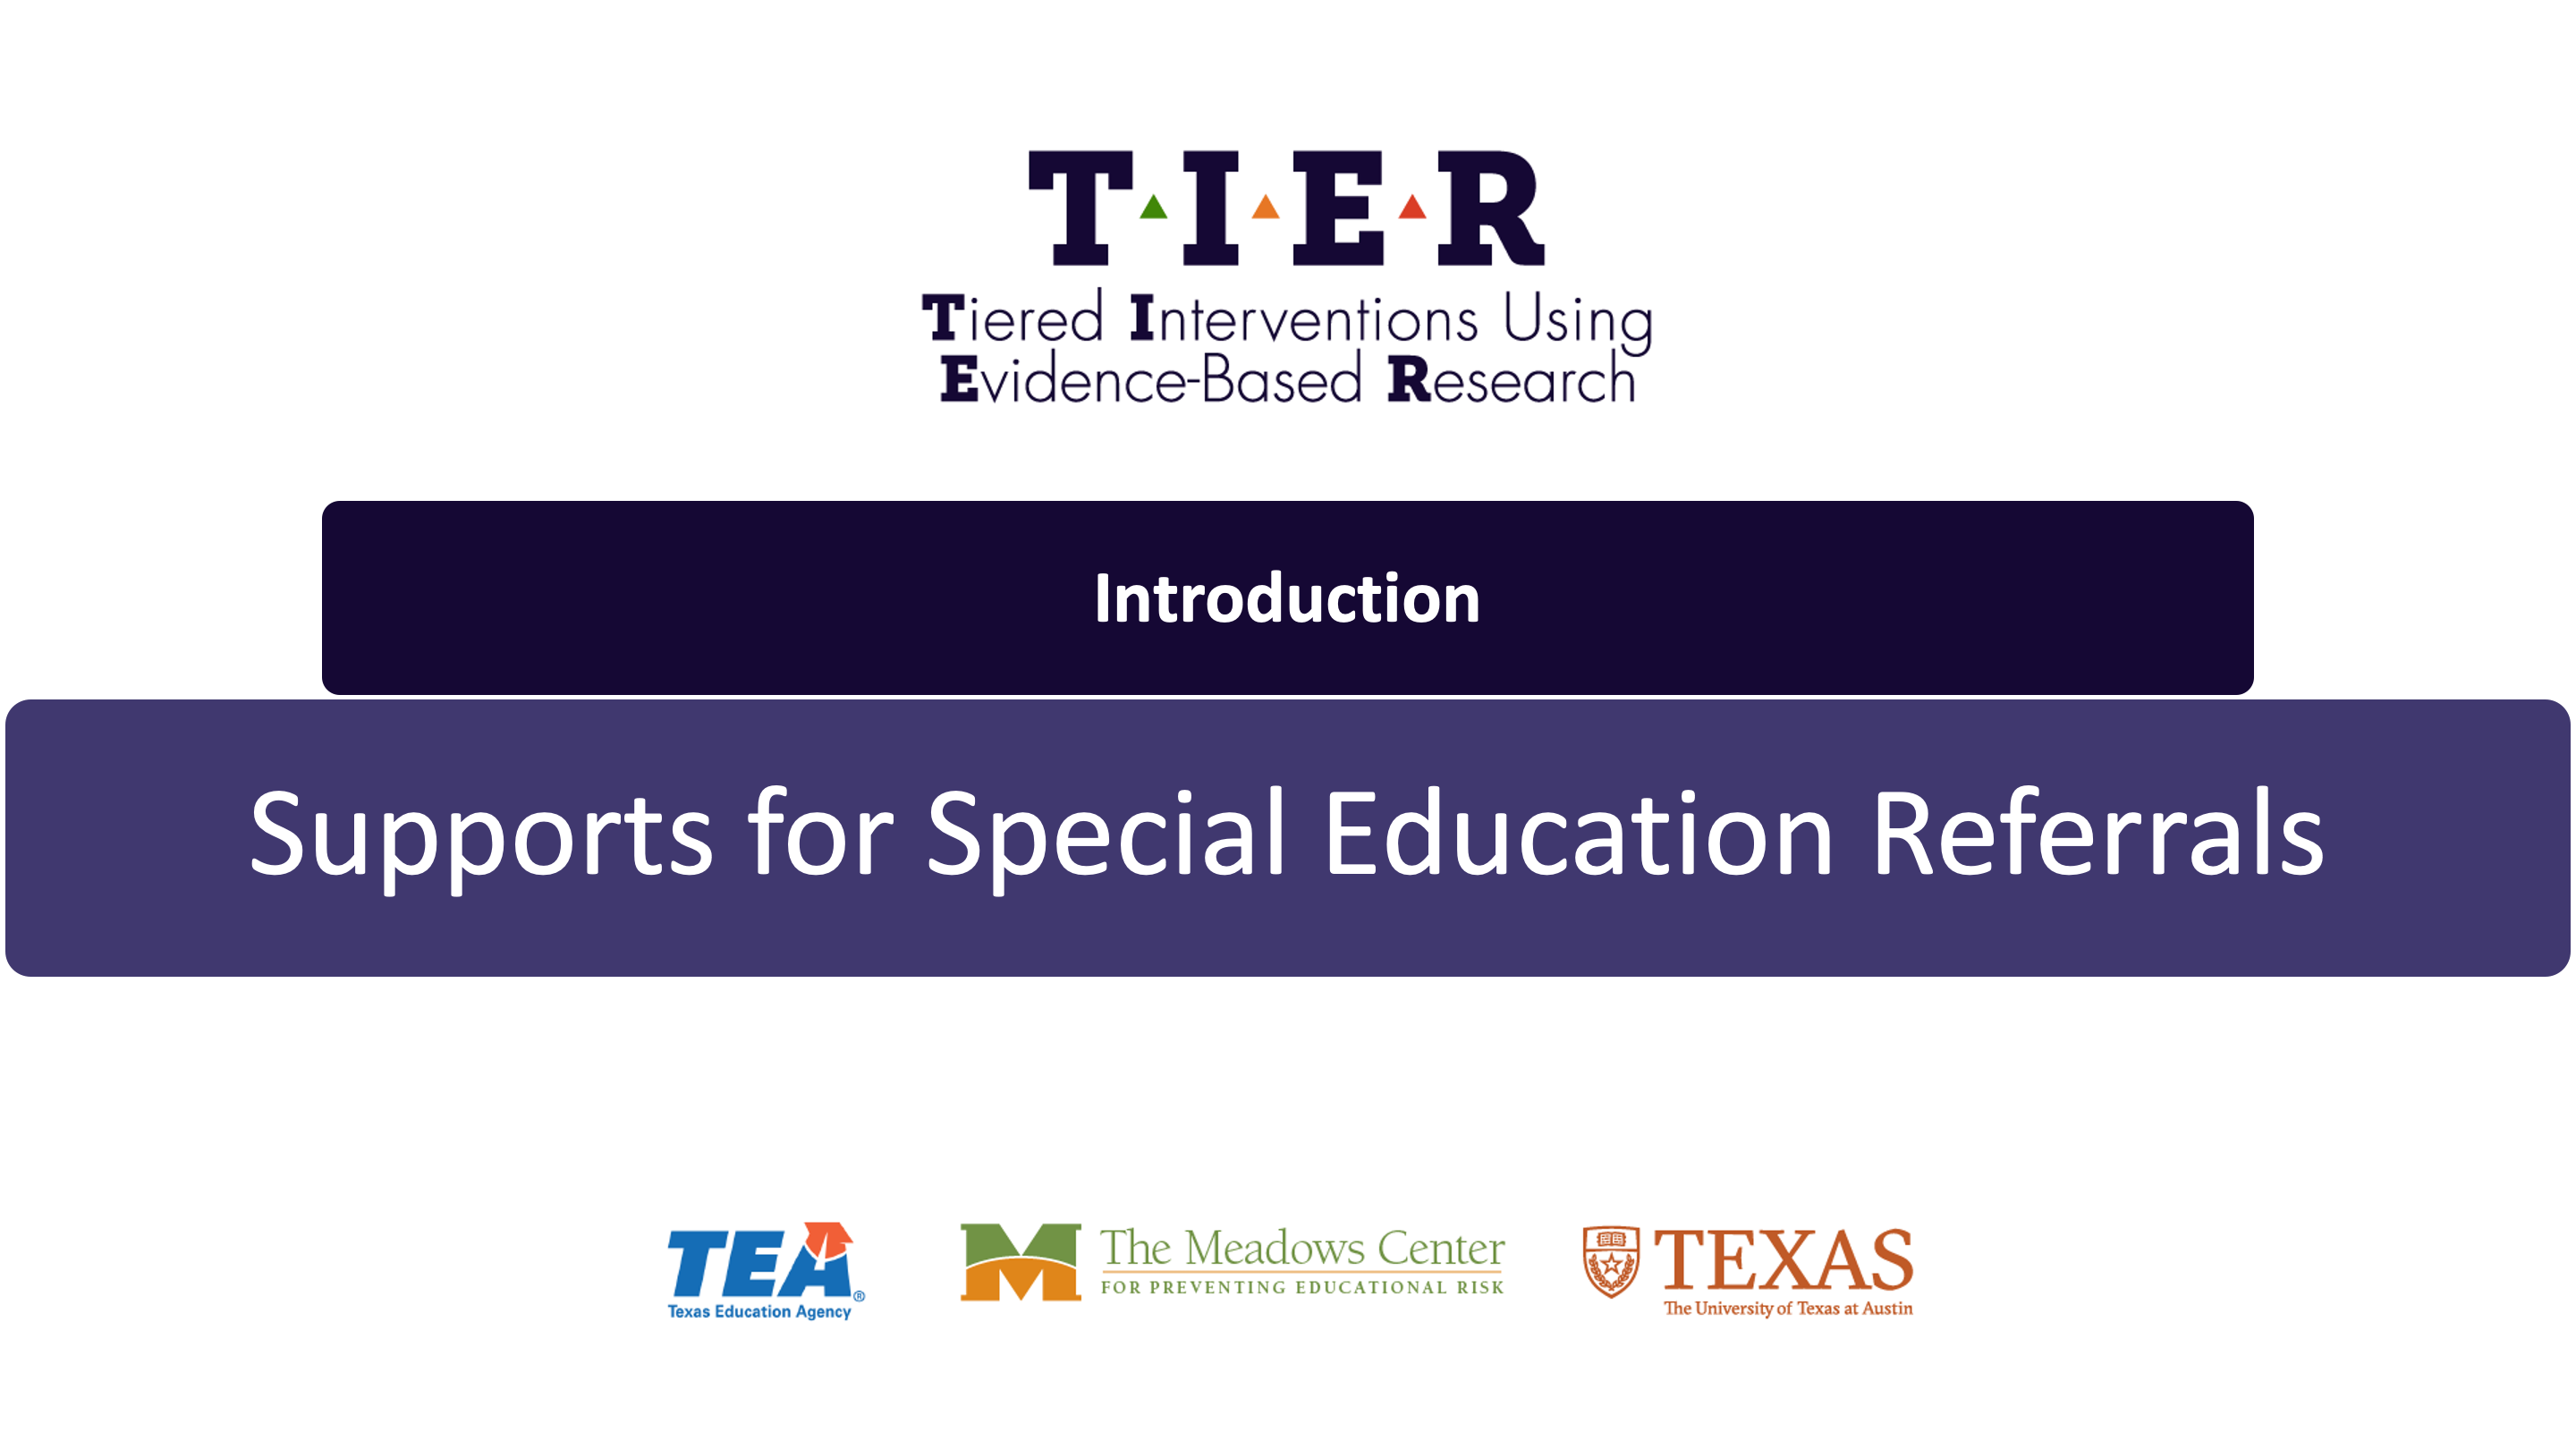 Supports for Special Education Referrals